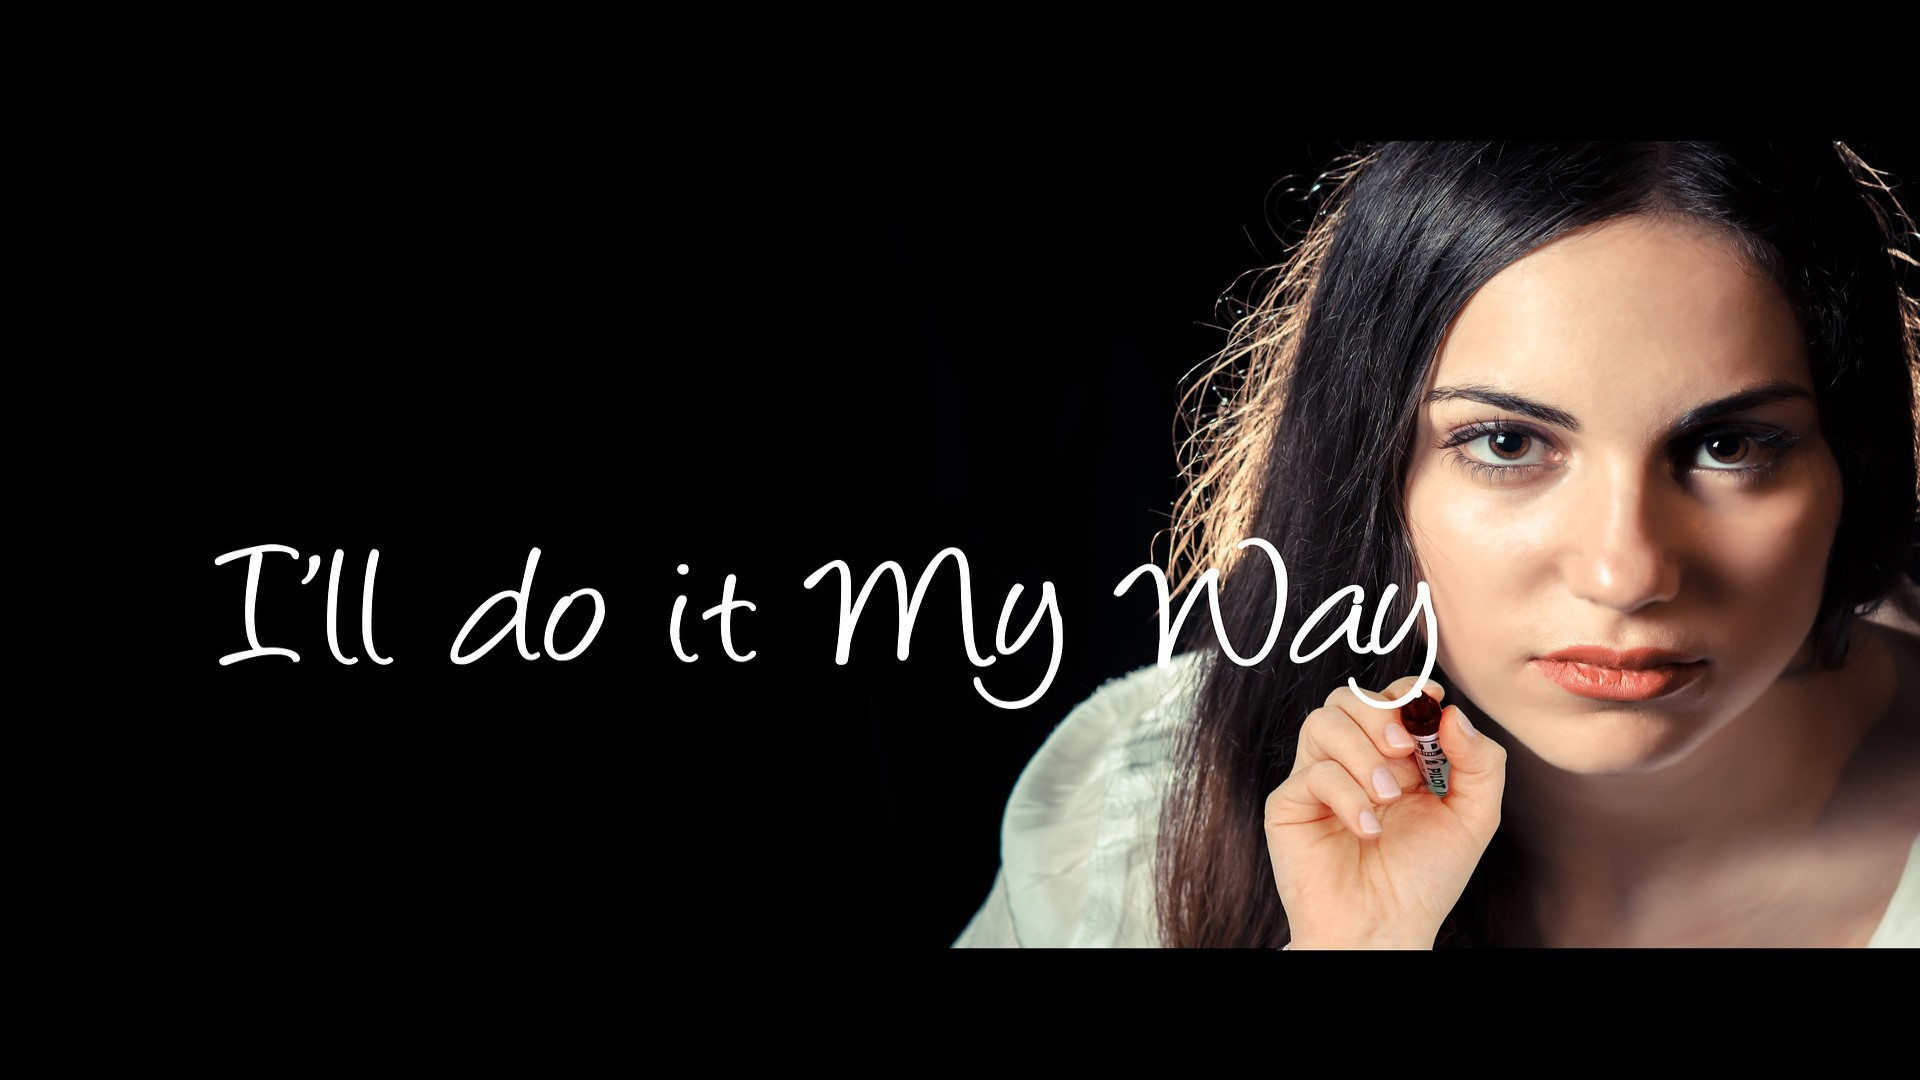 I'll do it my way is not content marketing.